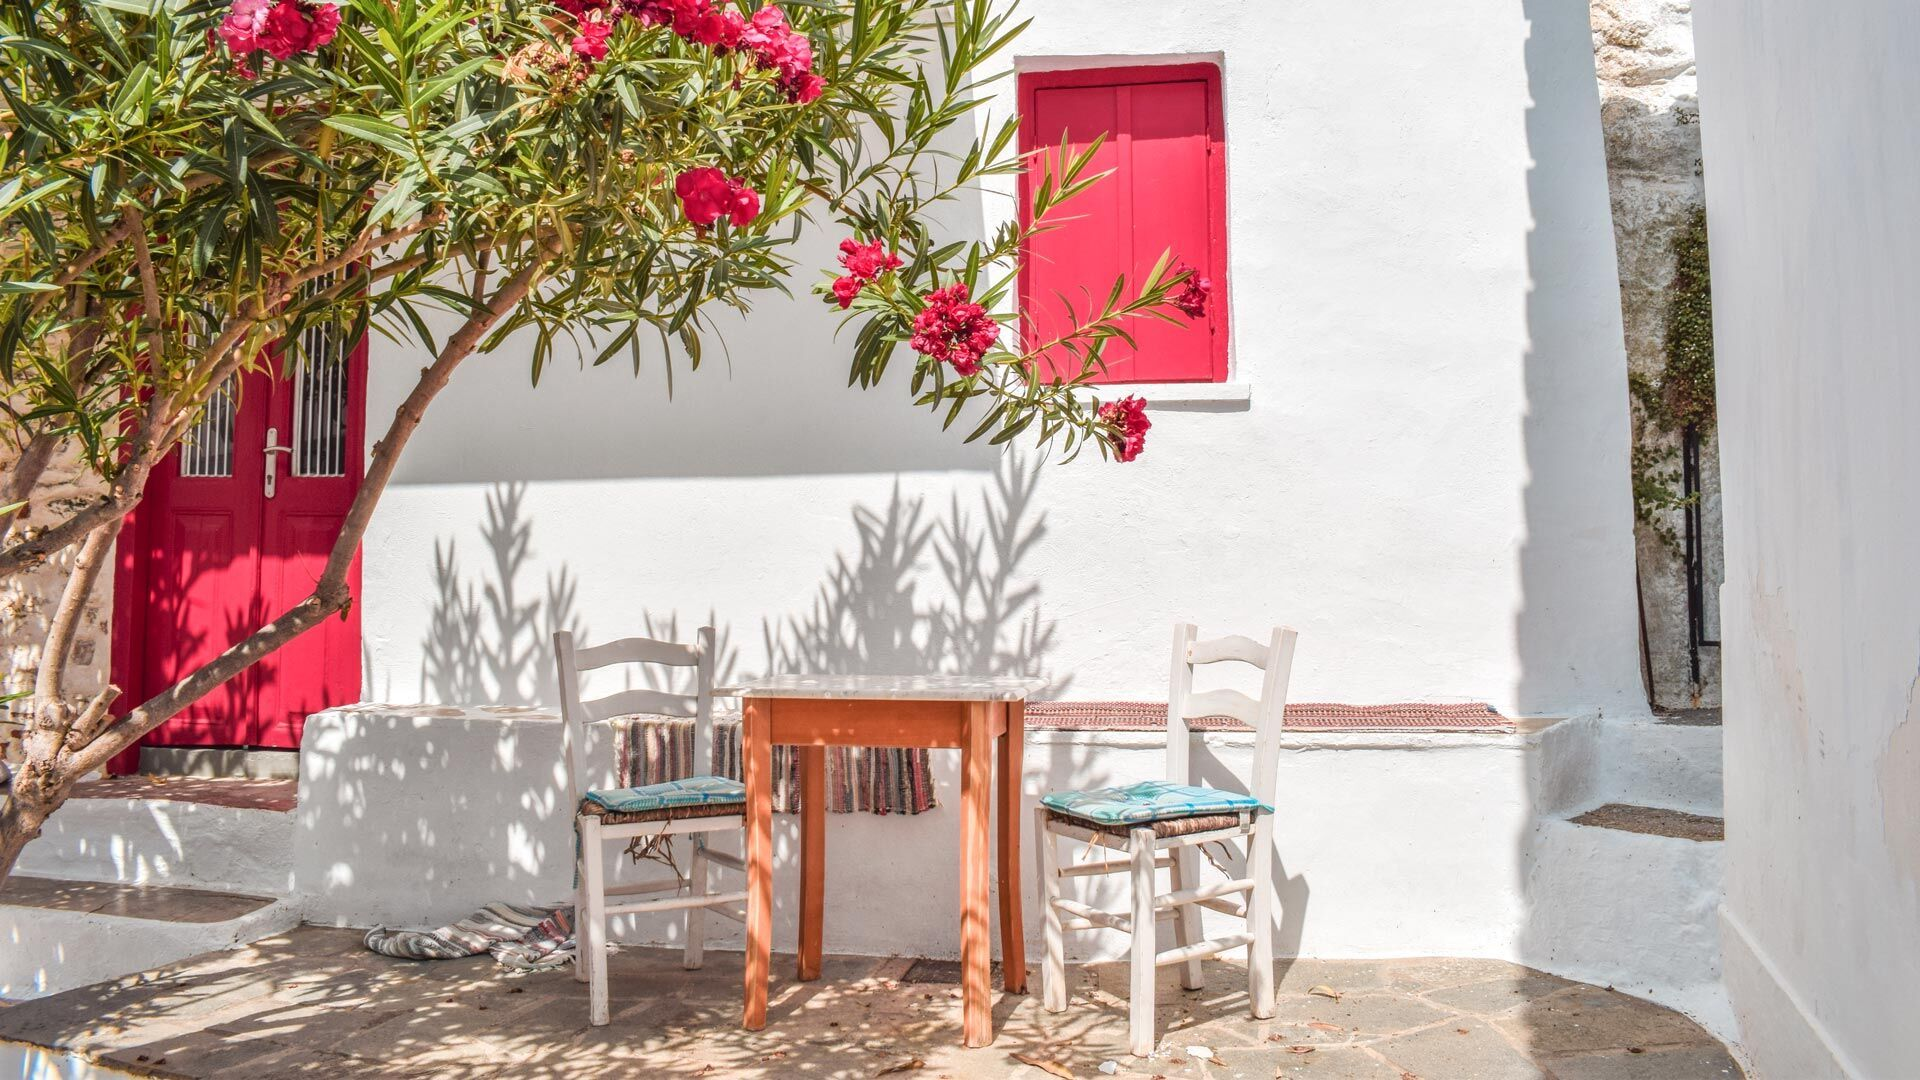 Immerse yourself in Skopelos town, then take a break at an ouzeri